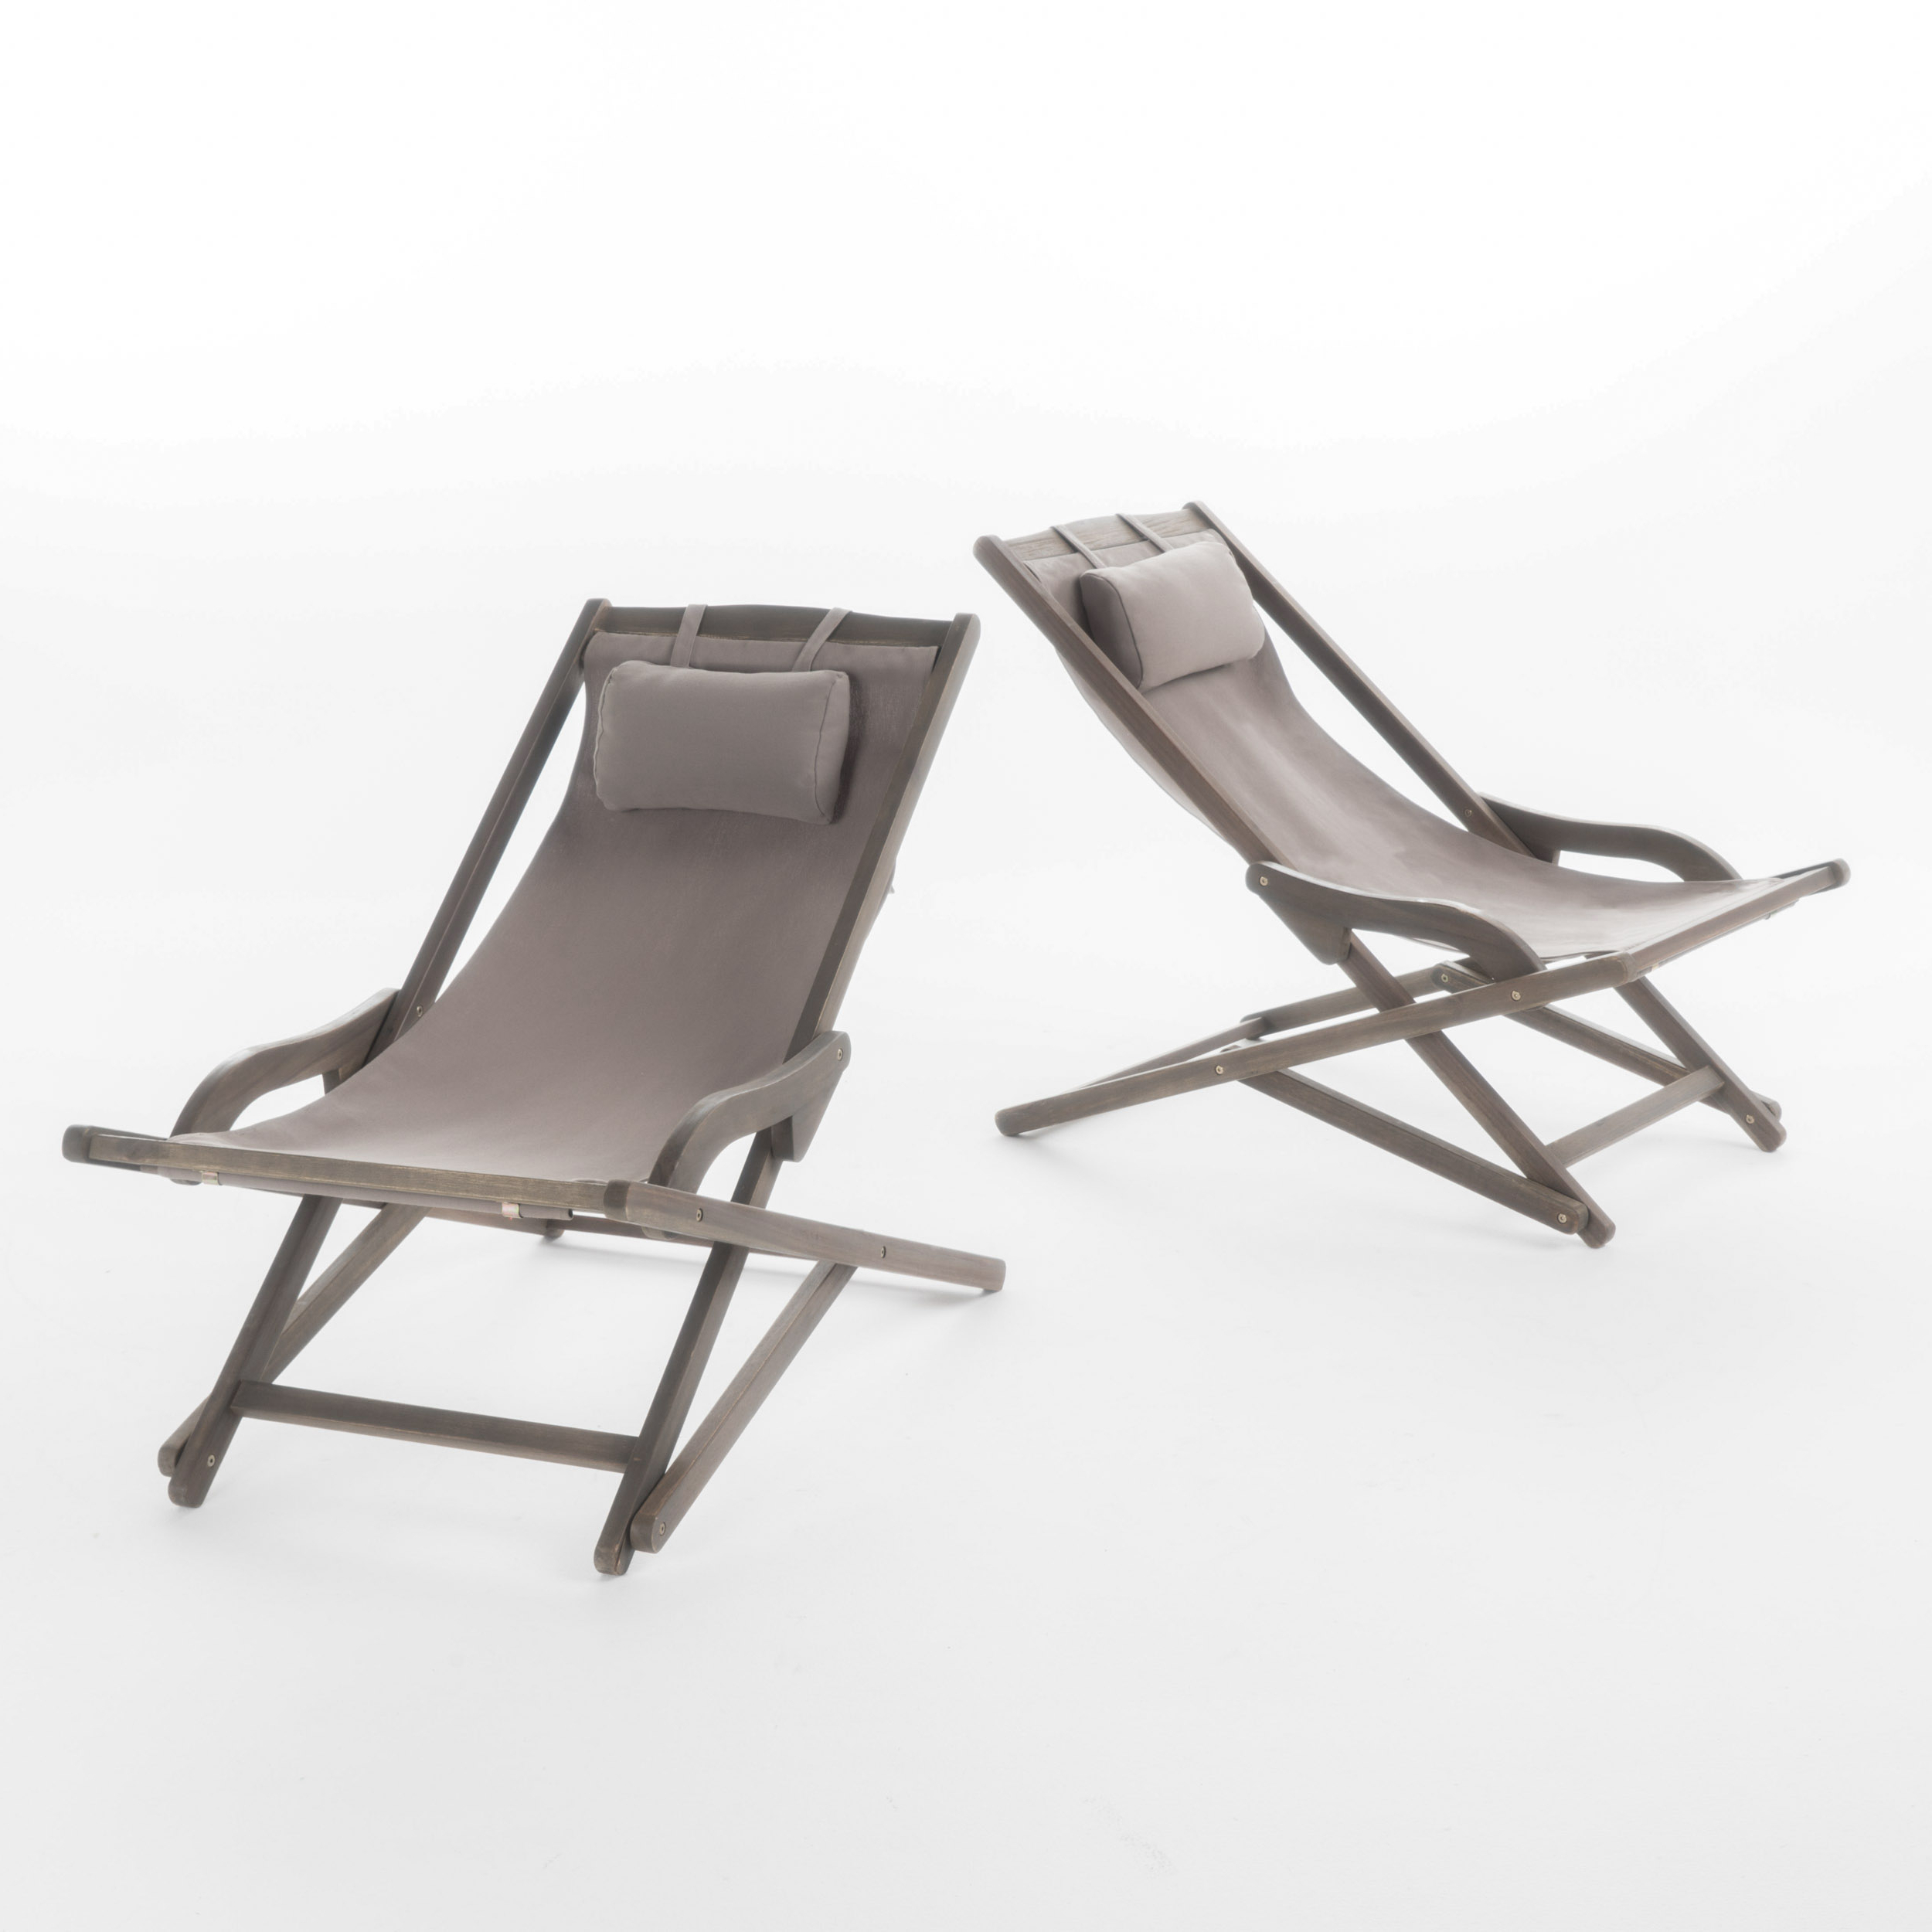 Canvas Patio Sling Chairs With Regard To Well Known Northland Outdoor Wood And Canvas Sling Chair, Set Of 2, Grey (View 21 of 25)